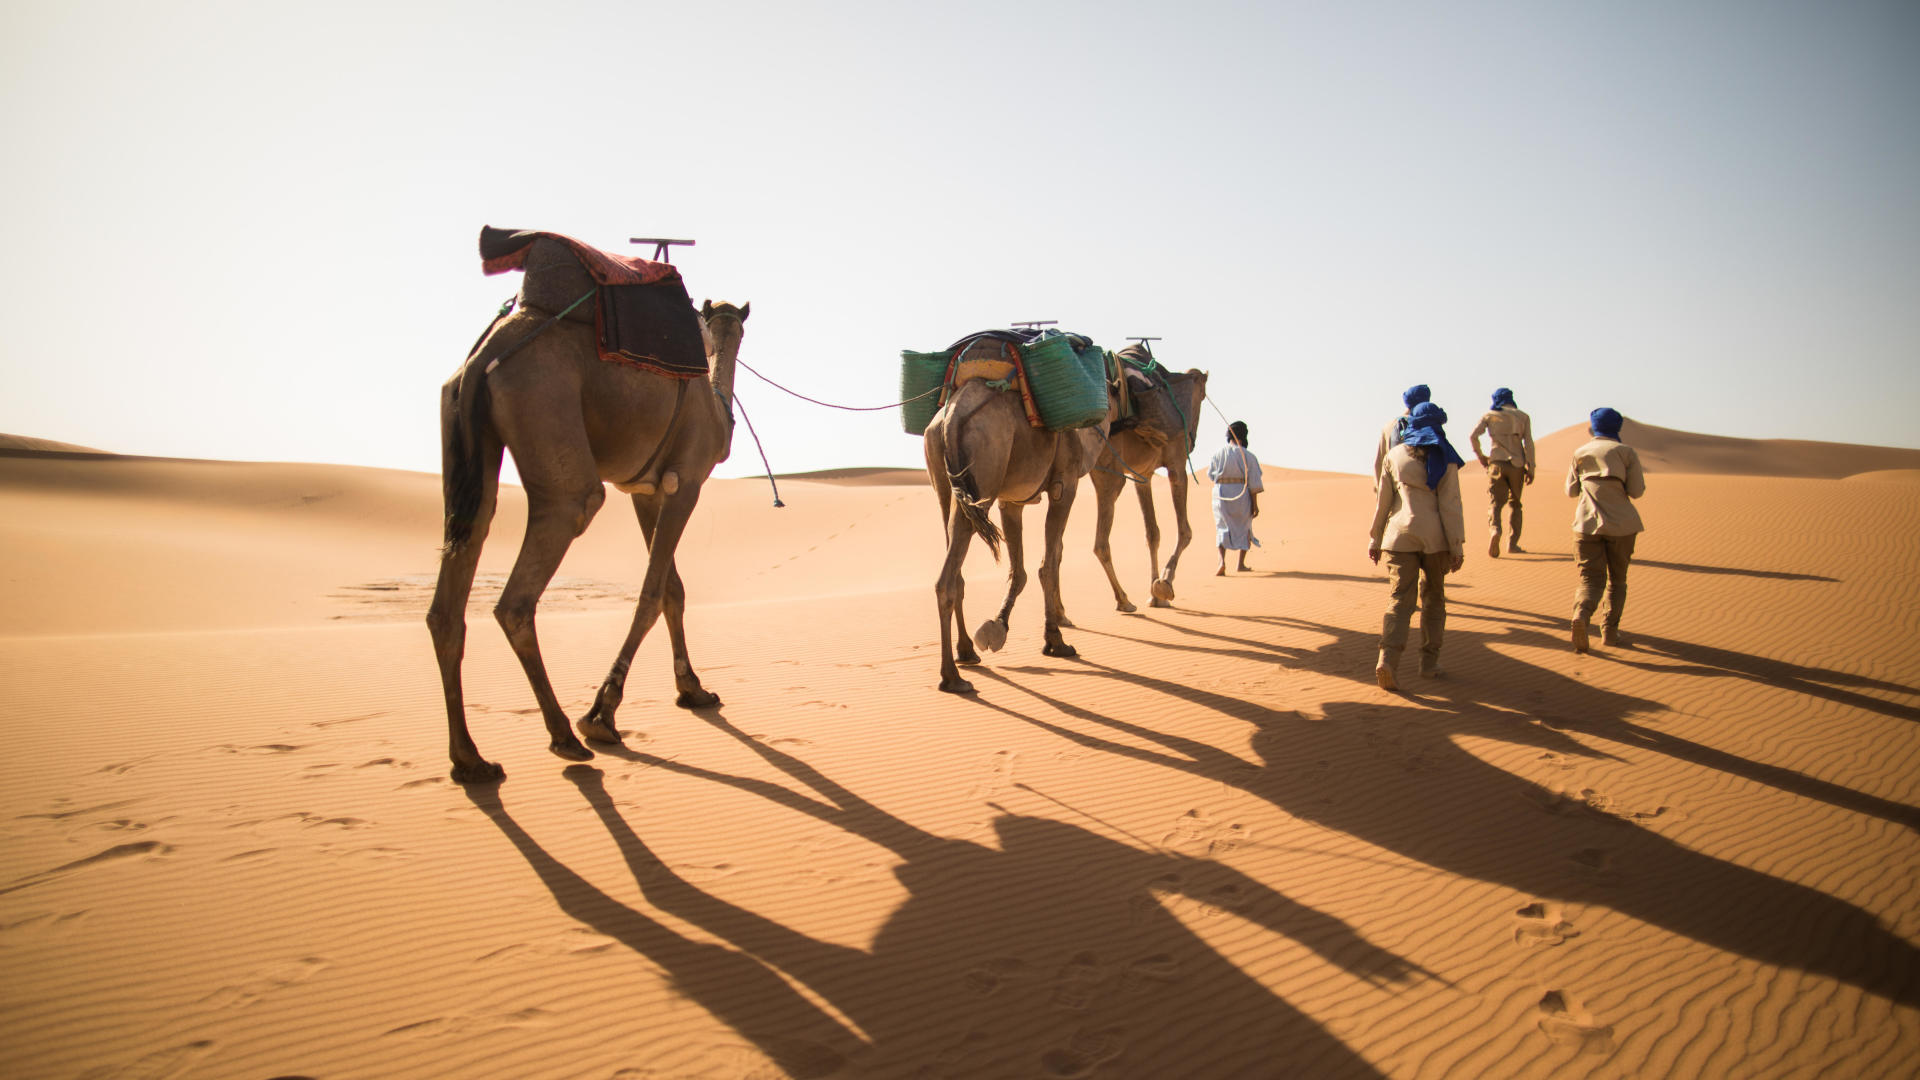 walking in the desert in the morning with camels